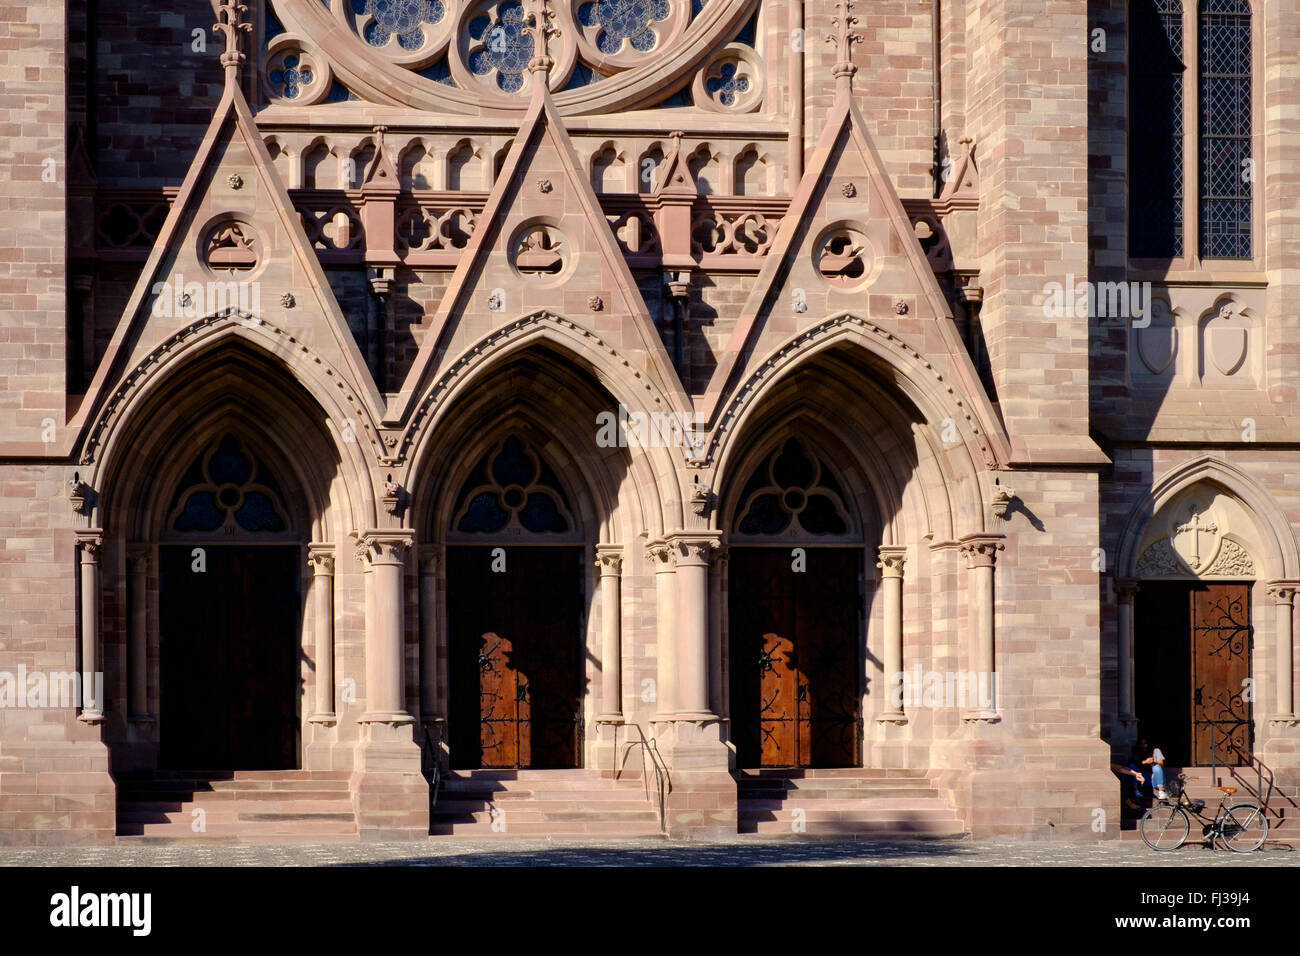 Portals of St Paul protestant church, Strasbourg, Alsace, France - Stock Image